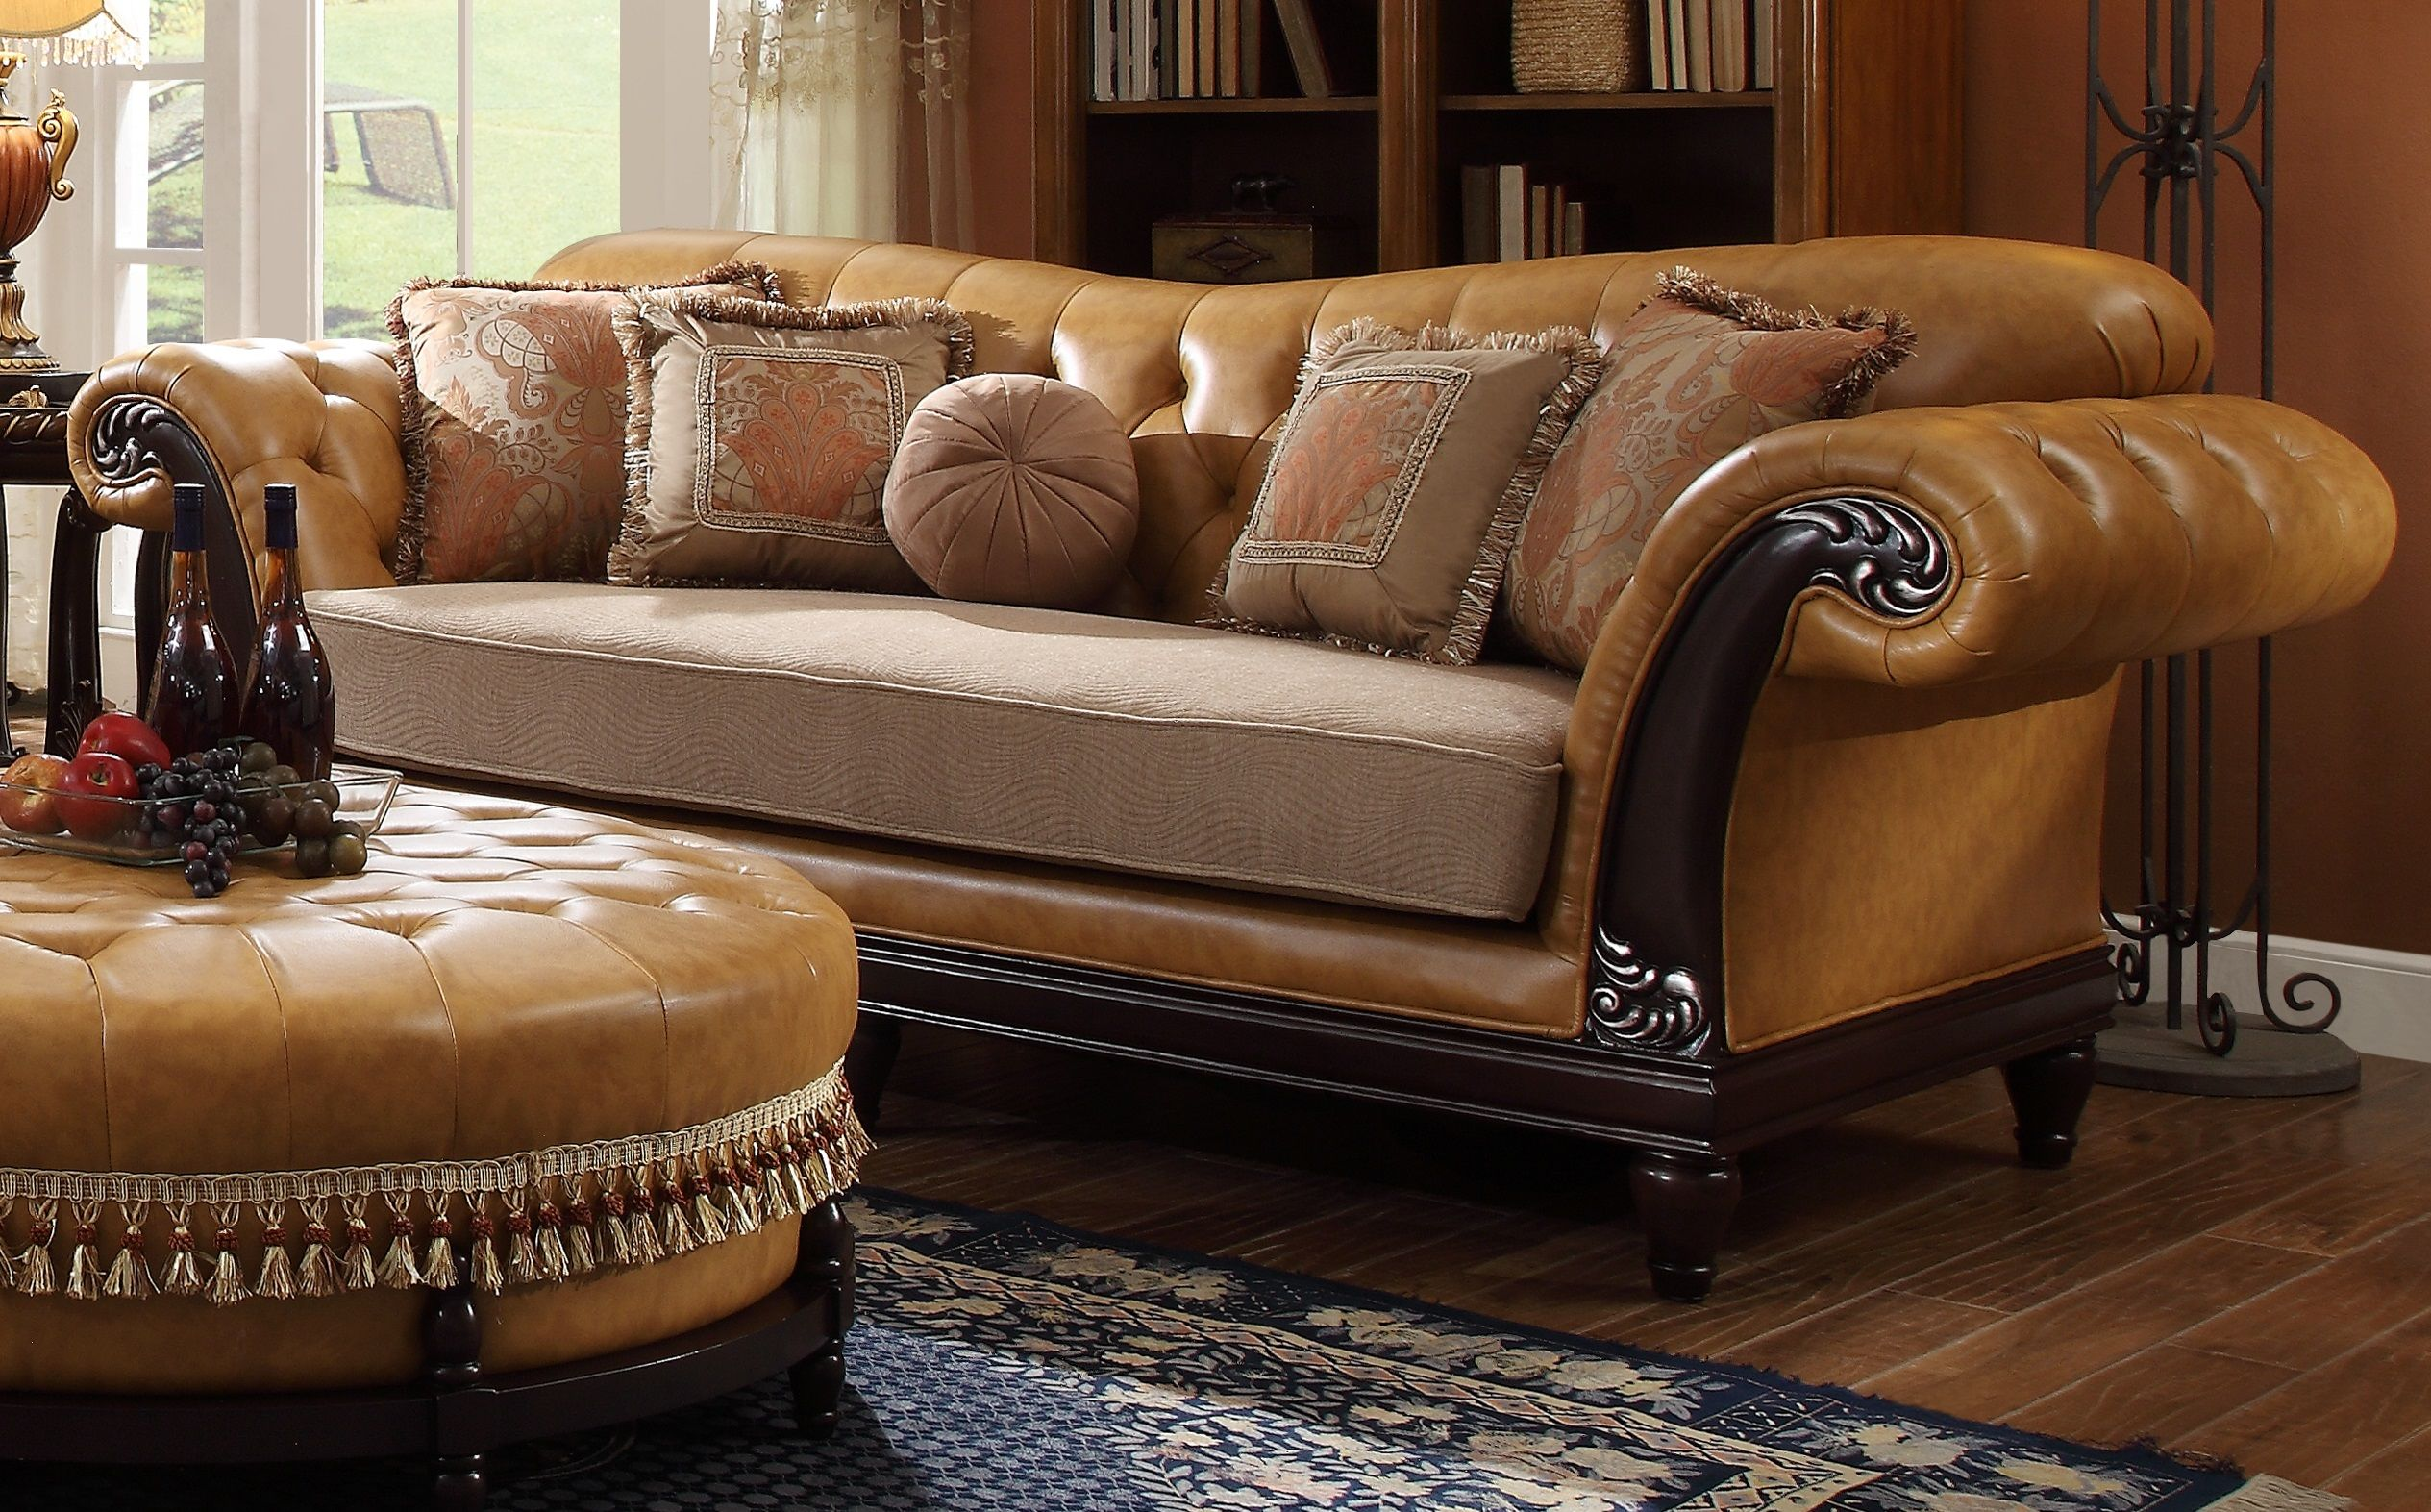 awesome leather sofa chair pattern-Elegant Leather sofa Chair Décor